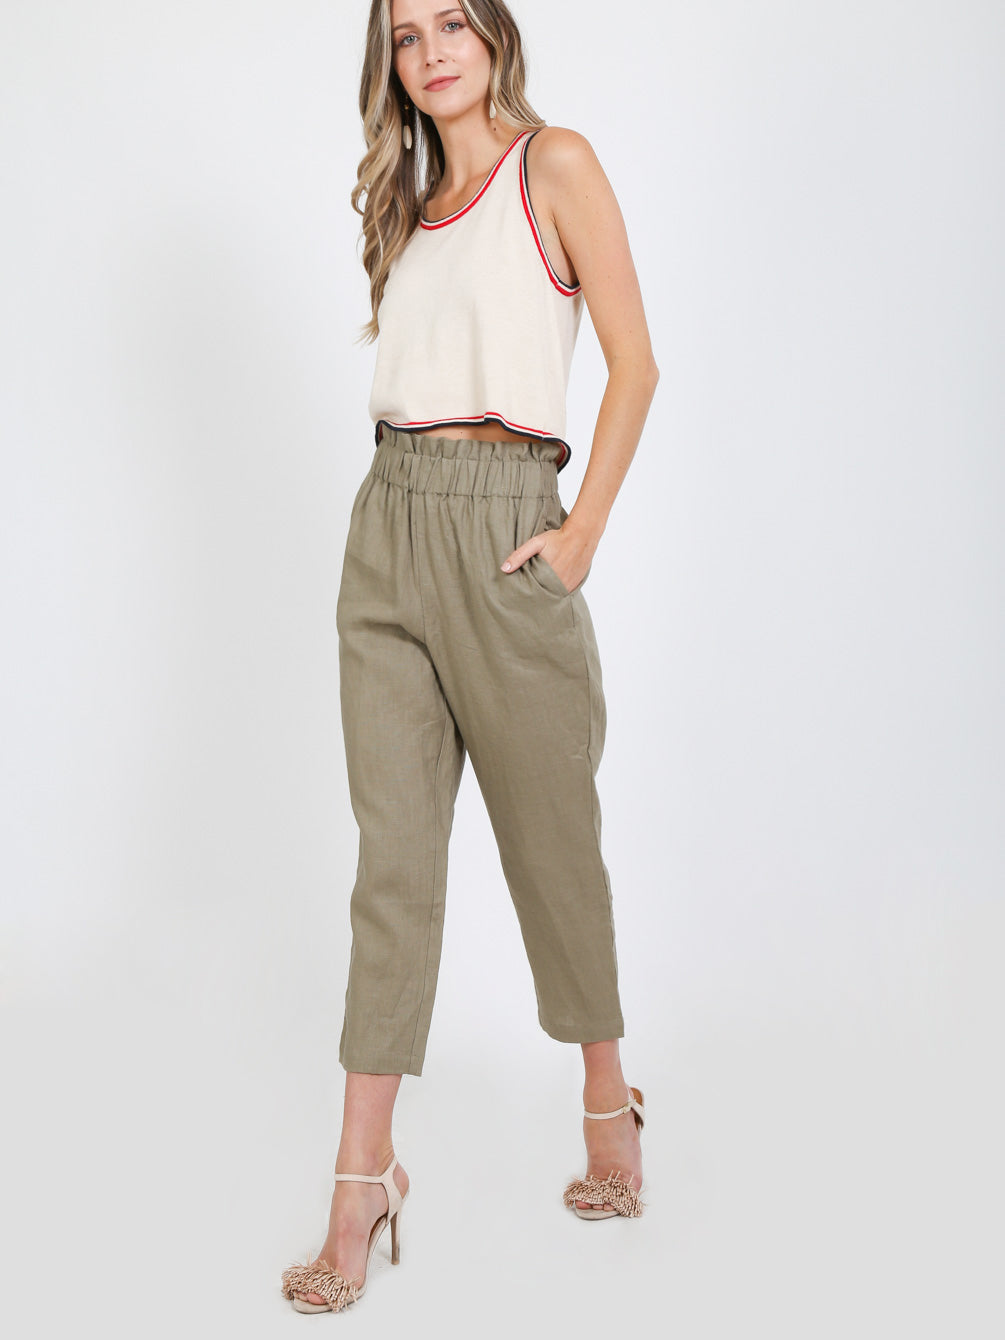 High Waist Elastic Band Pants